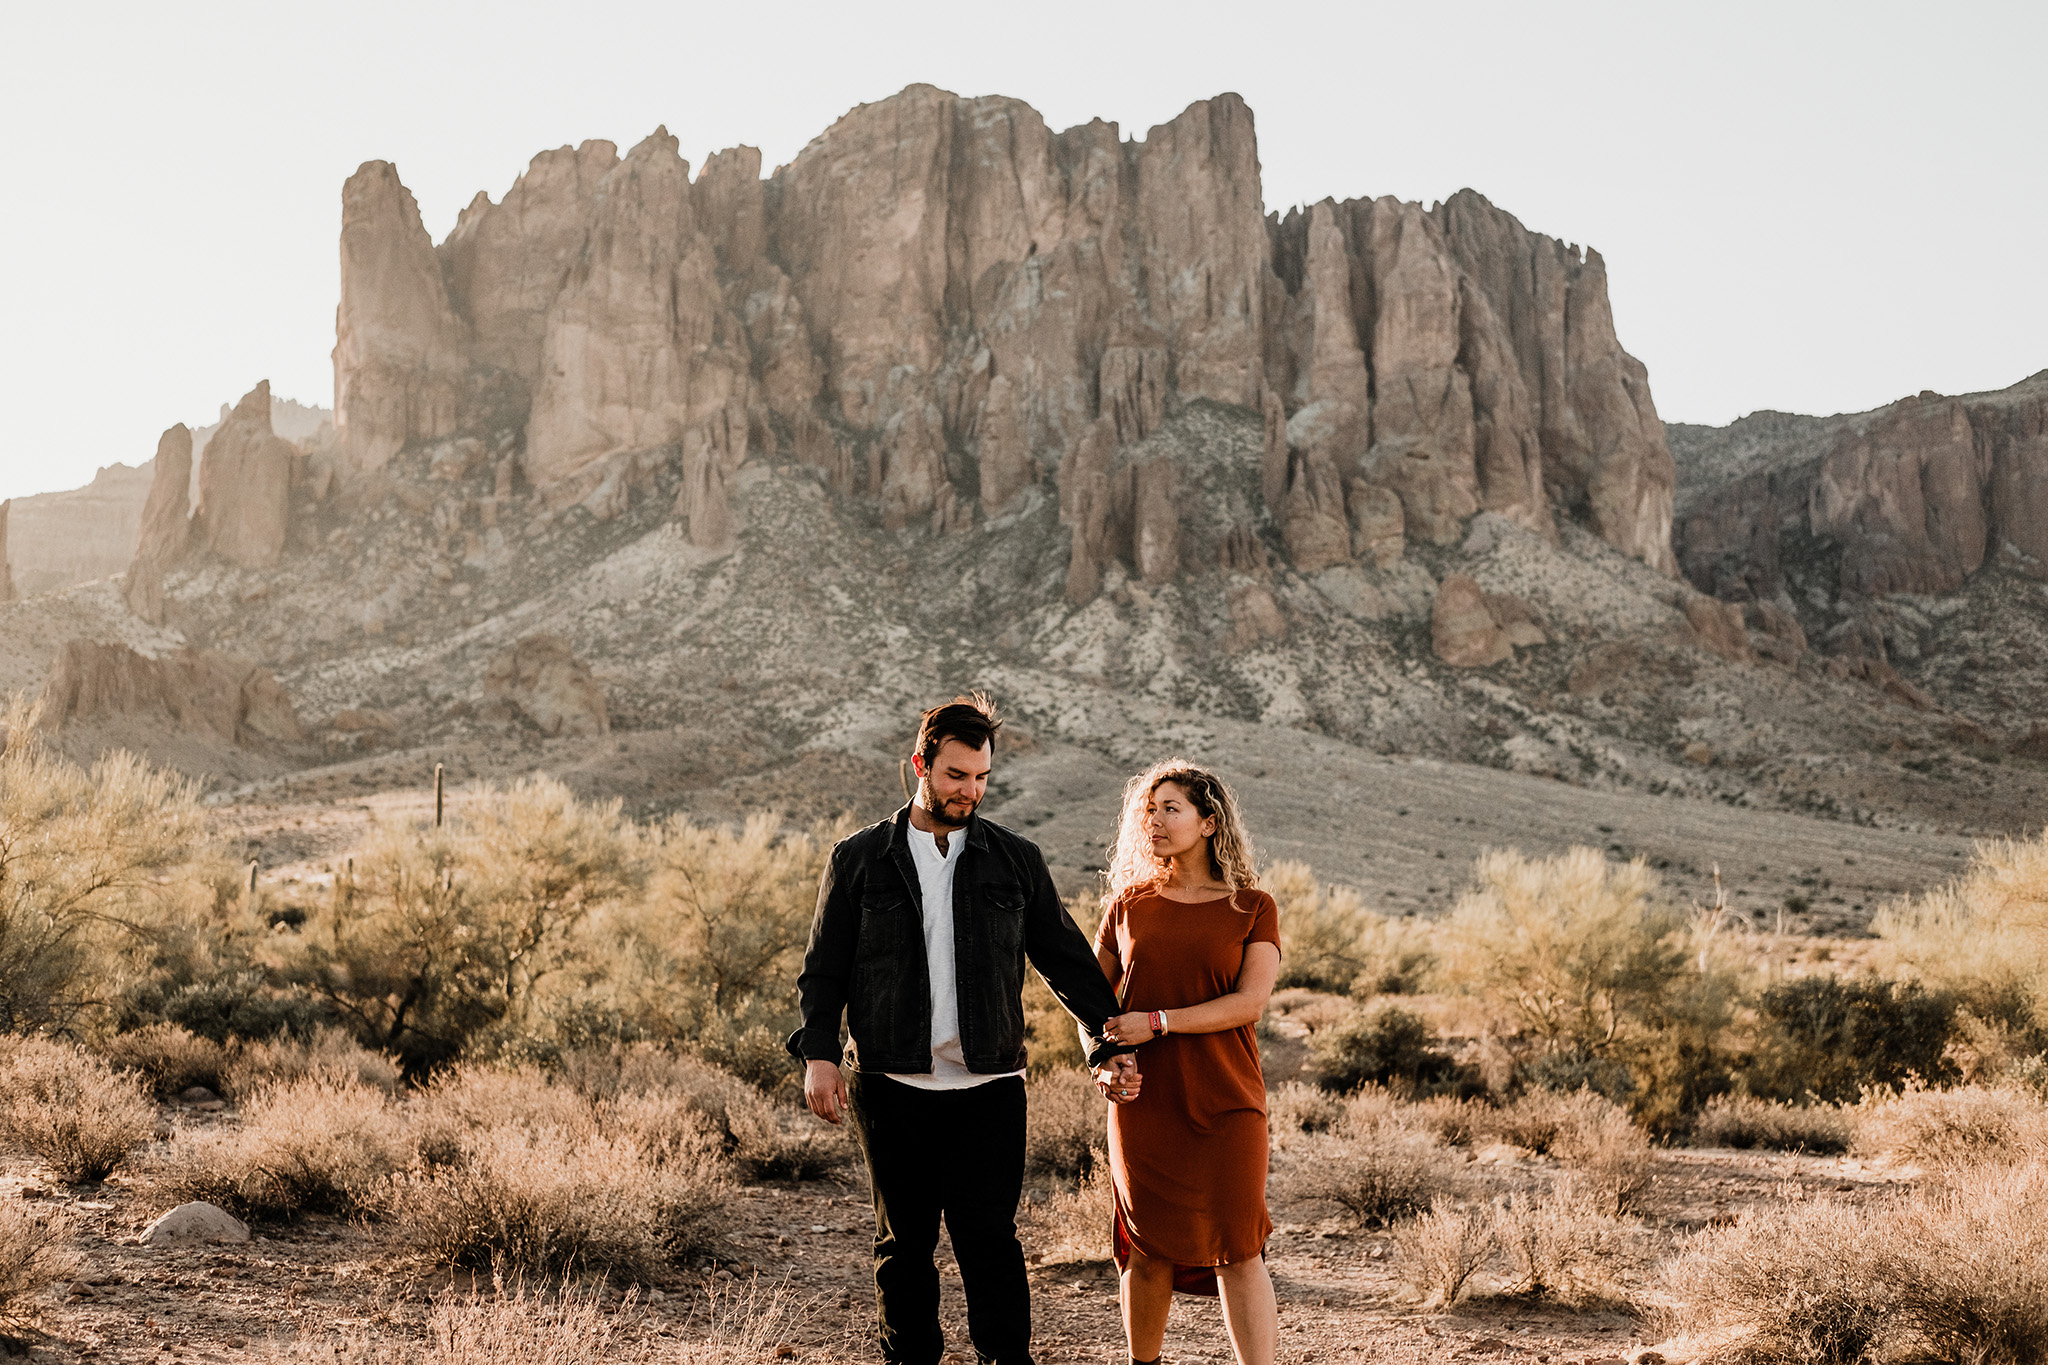 Arizona-Desert-Intimate-Wedding-Photographer-Lost-Dutchman-State-Park (36).jpg